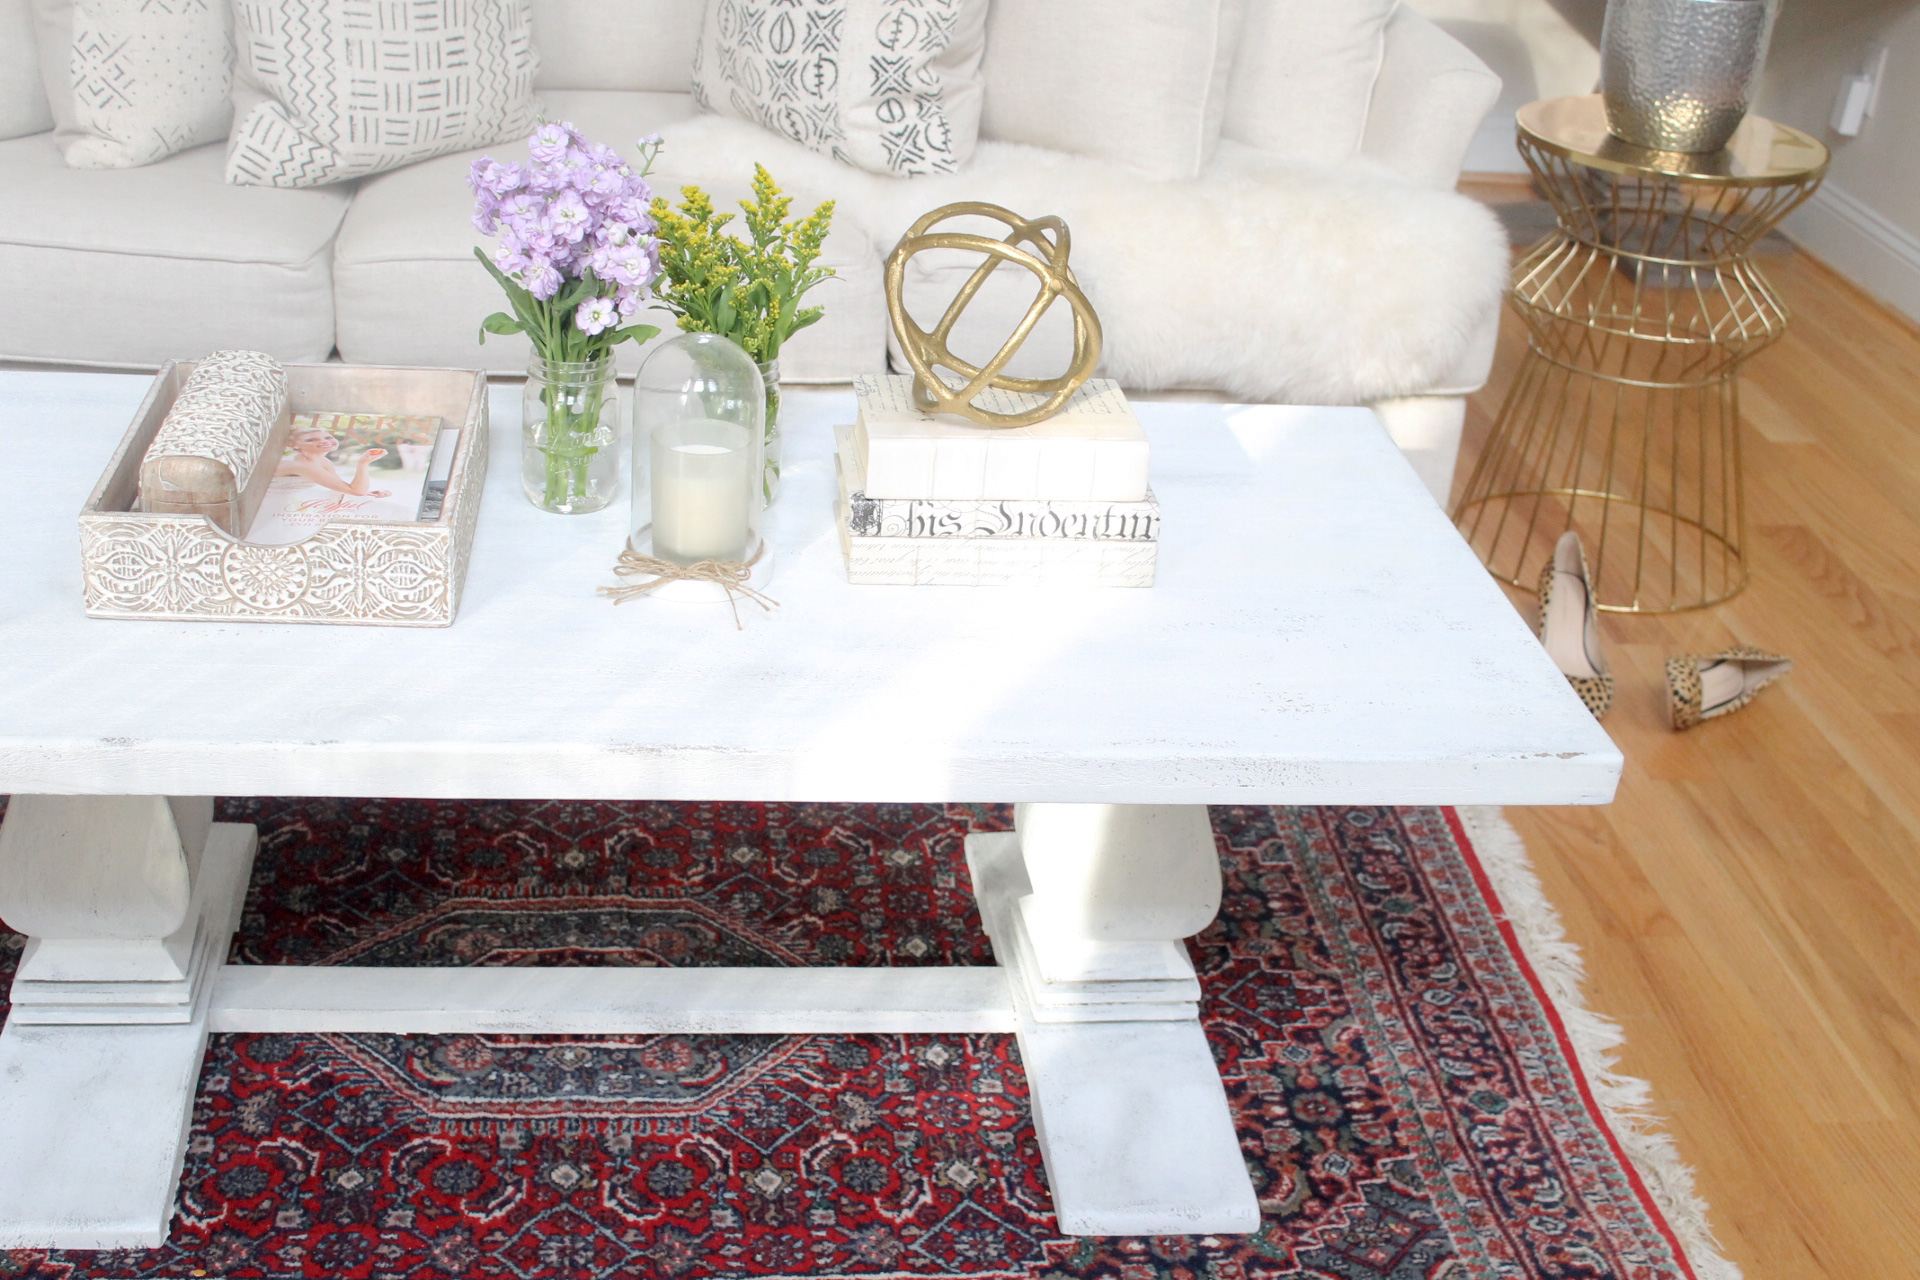 How To Distress A Shabby Chic Coffee Table The Easy Way Glitter Inc Glitter Inc